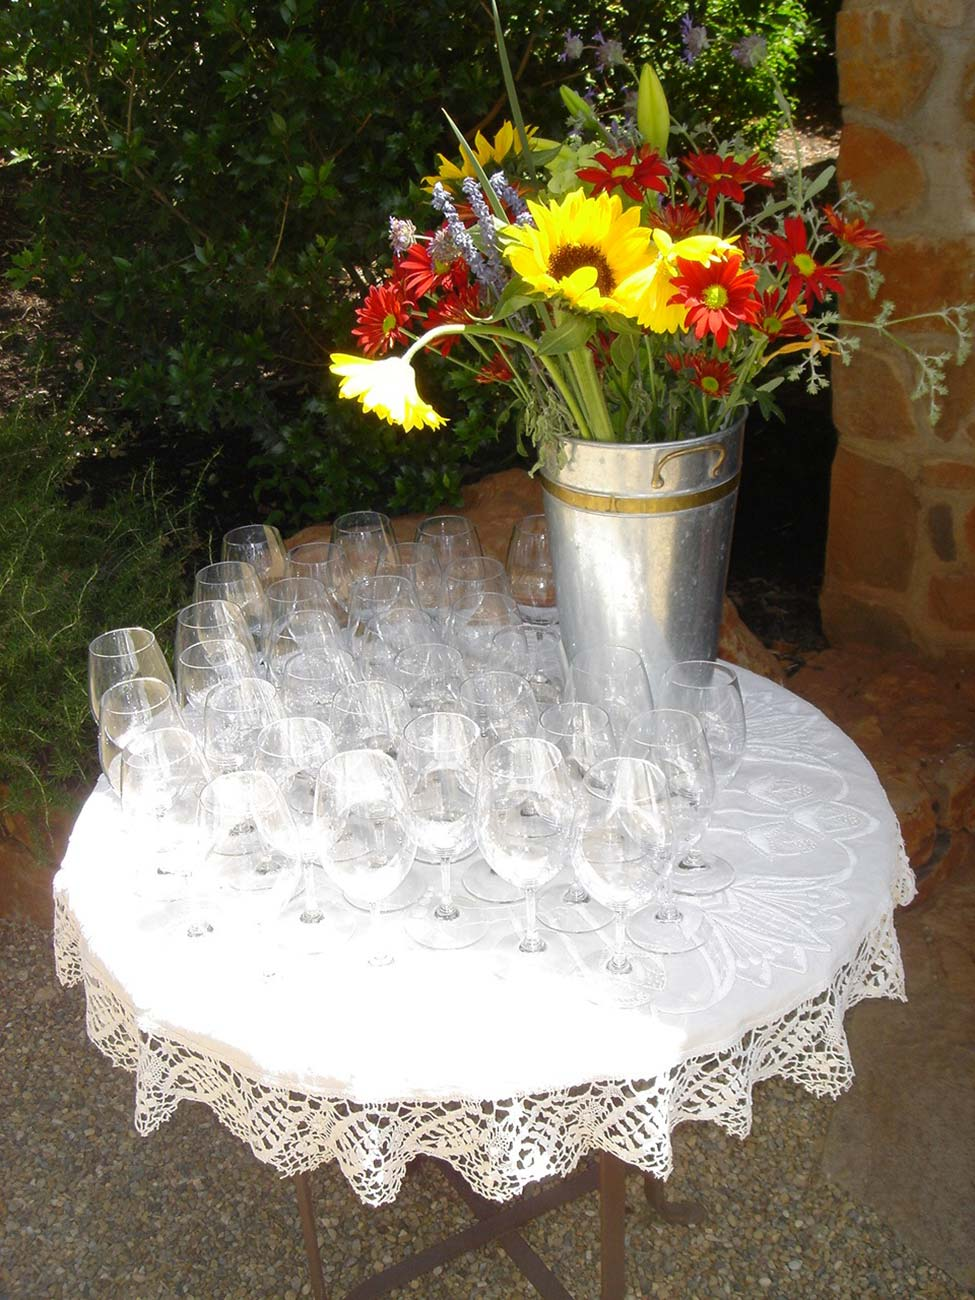 Small round table with wine glasses and a large metal vase filled with wild flowers